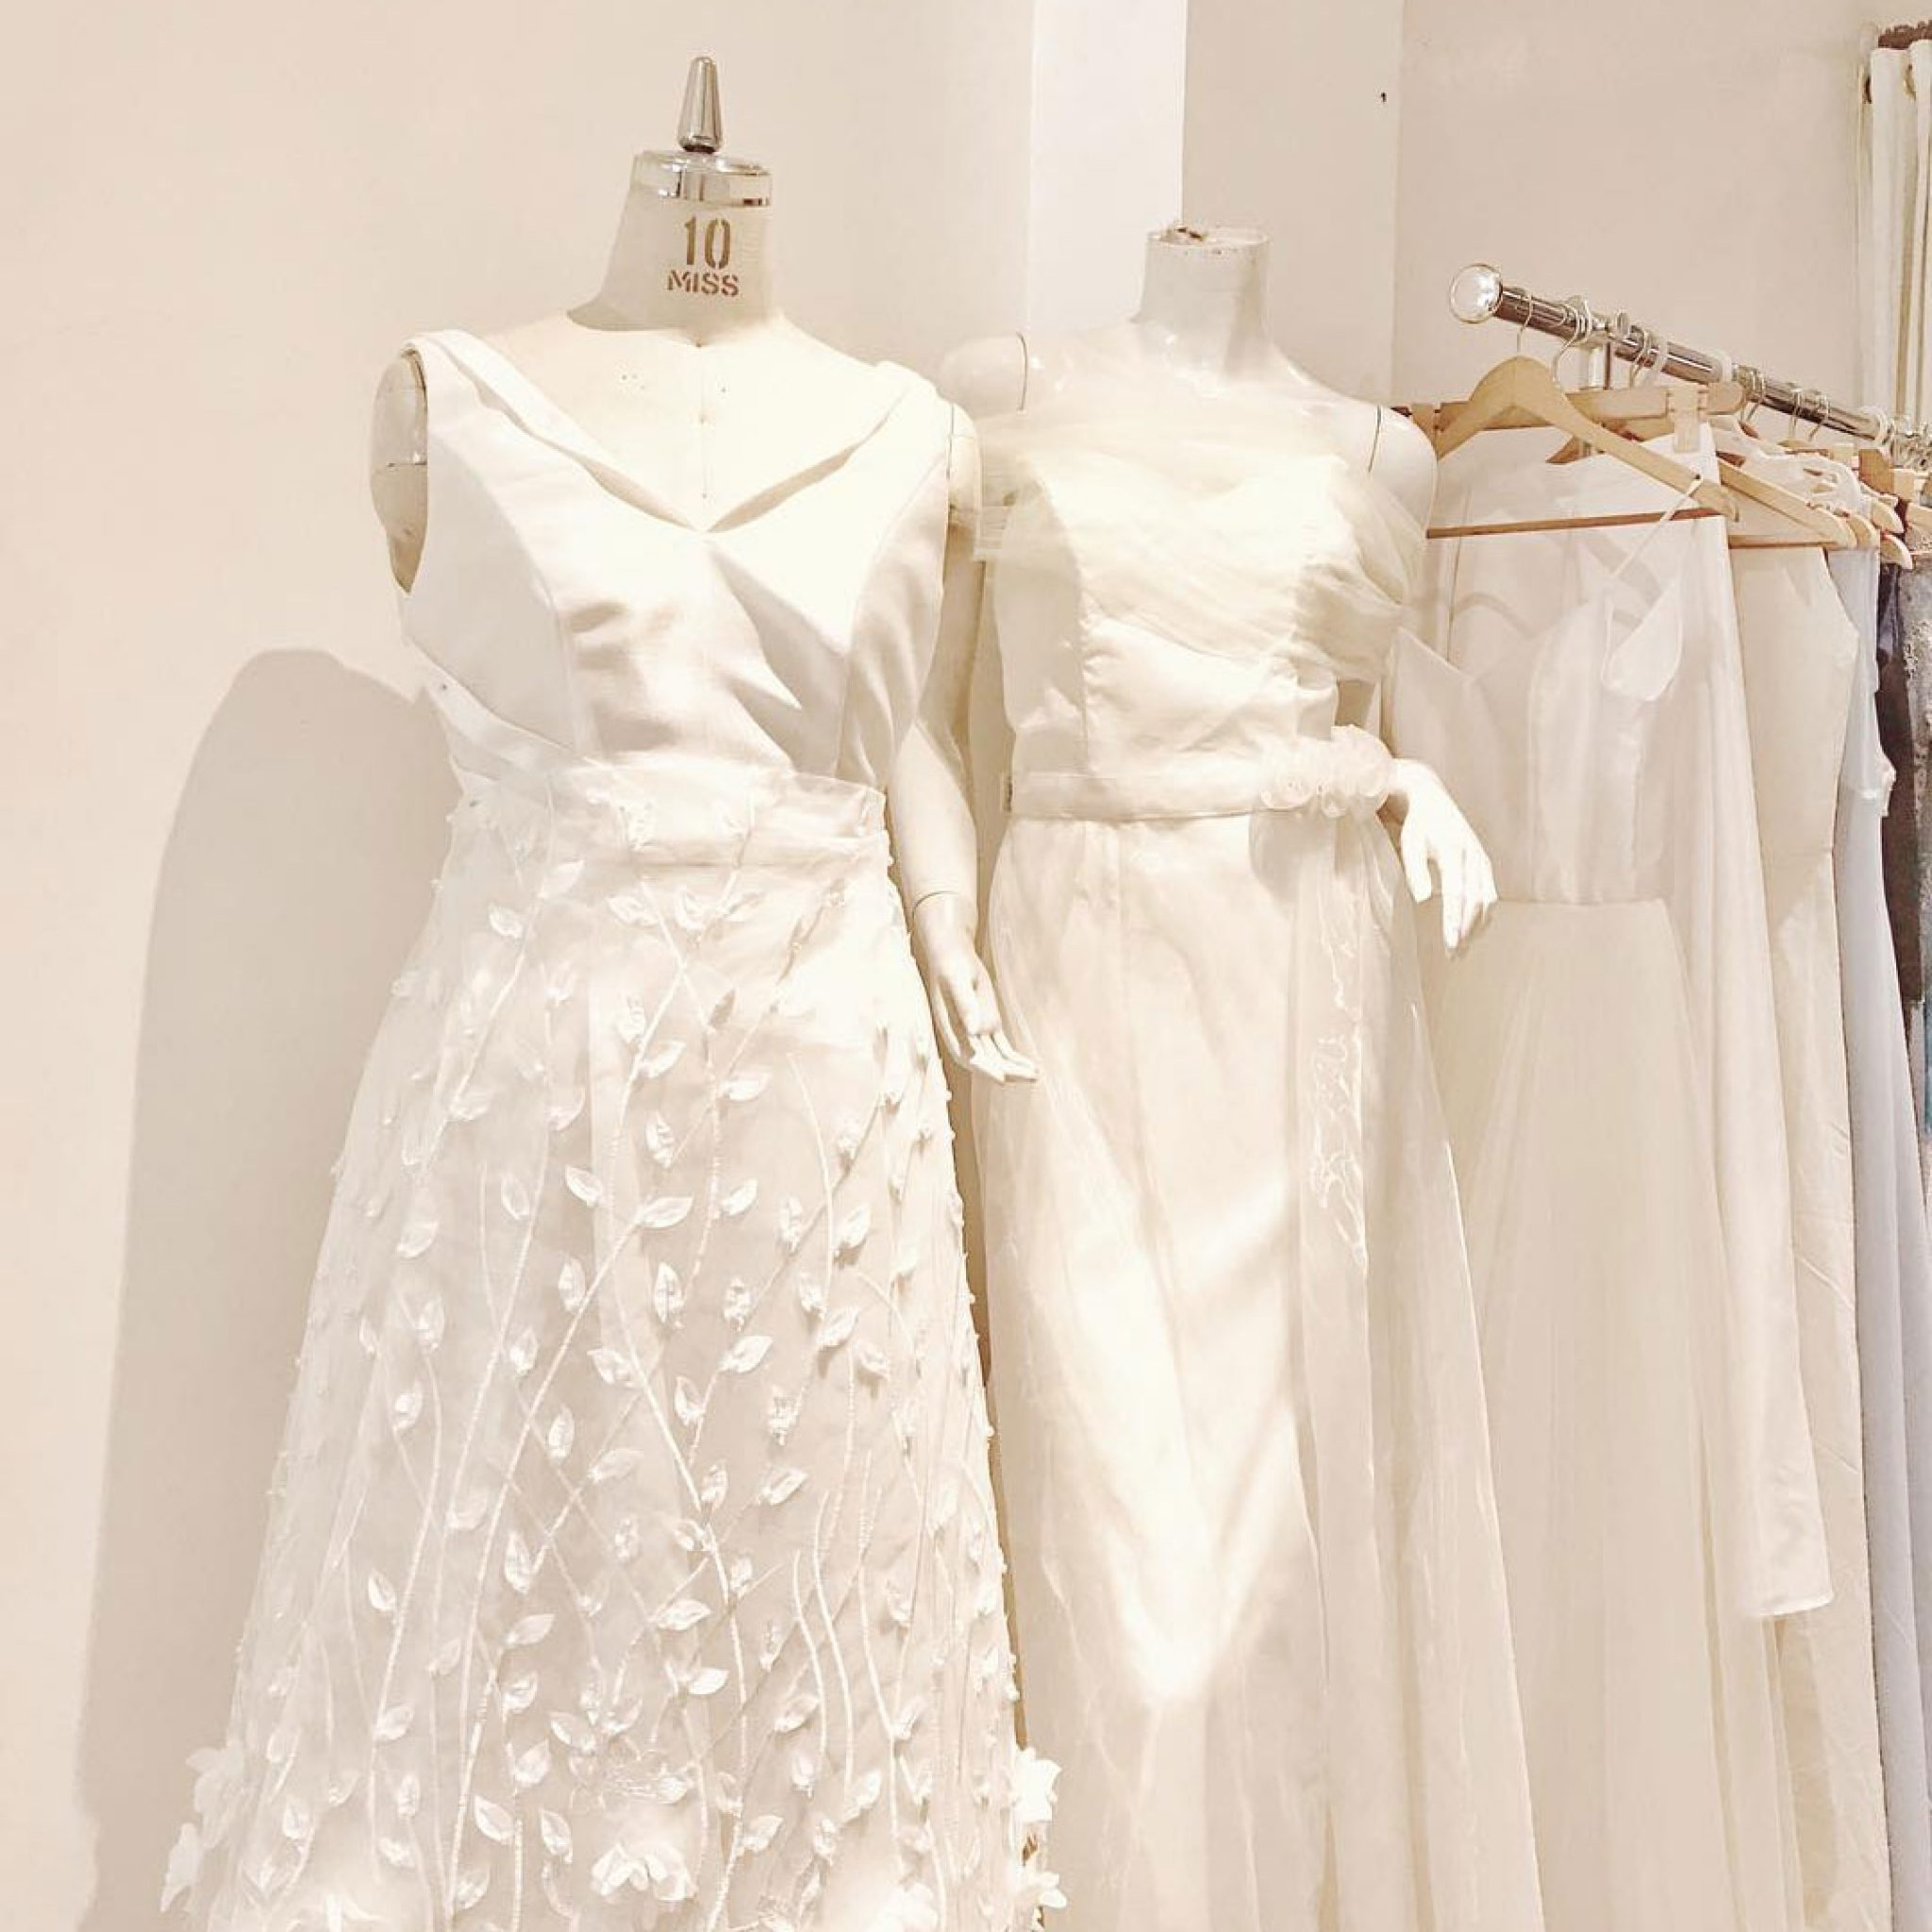 Wedding Gown Manila: Affordable Wedding Gowns In Manila: Find The Perfect Dress